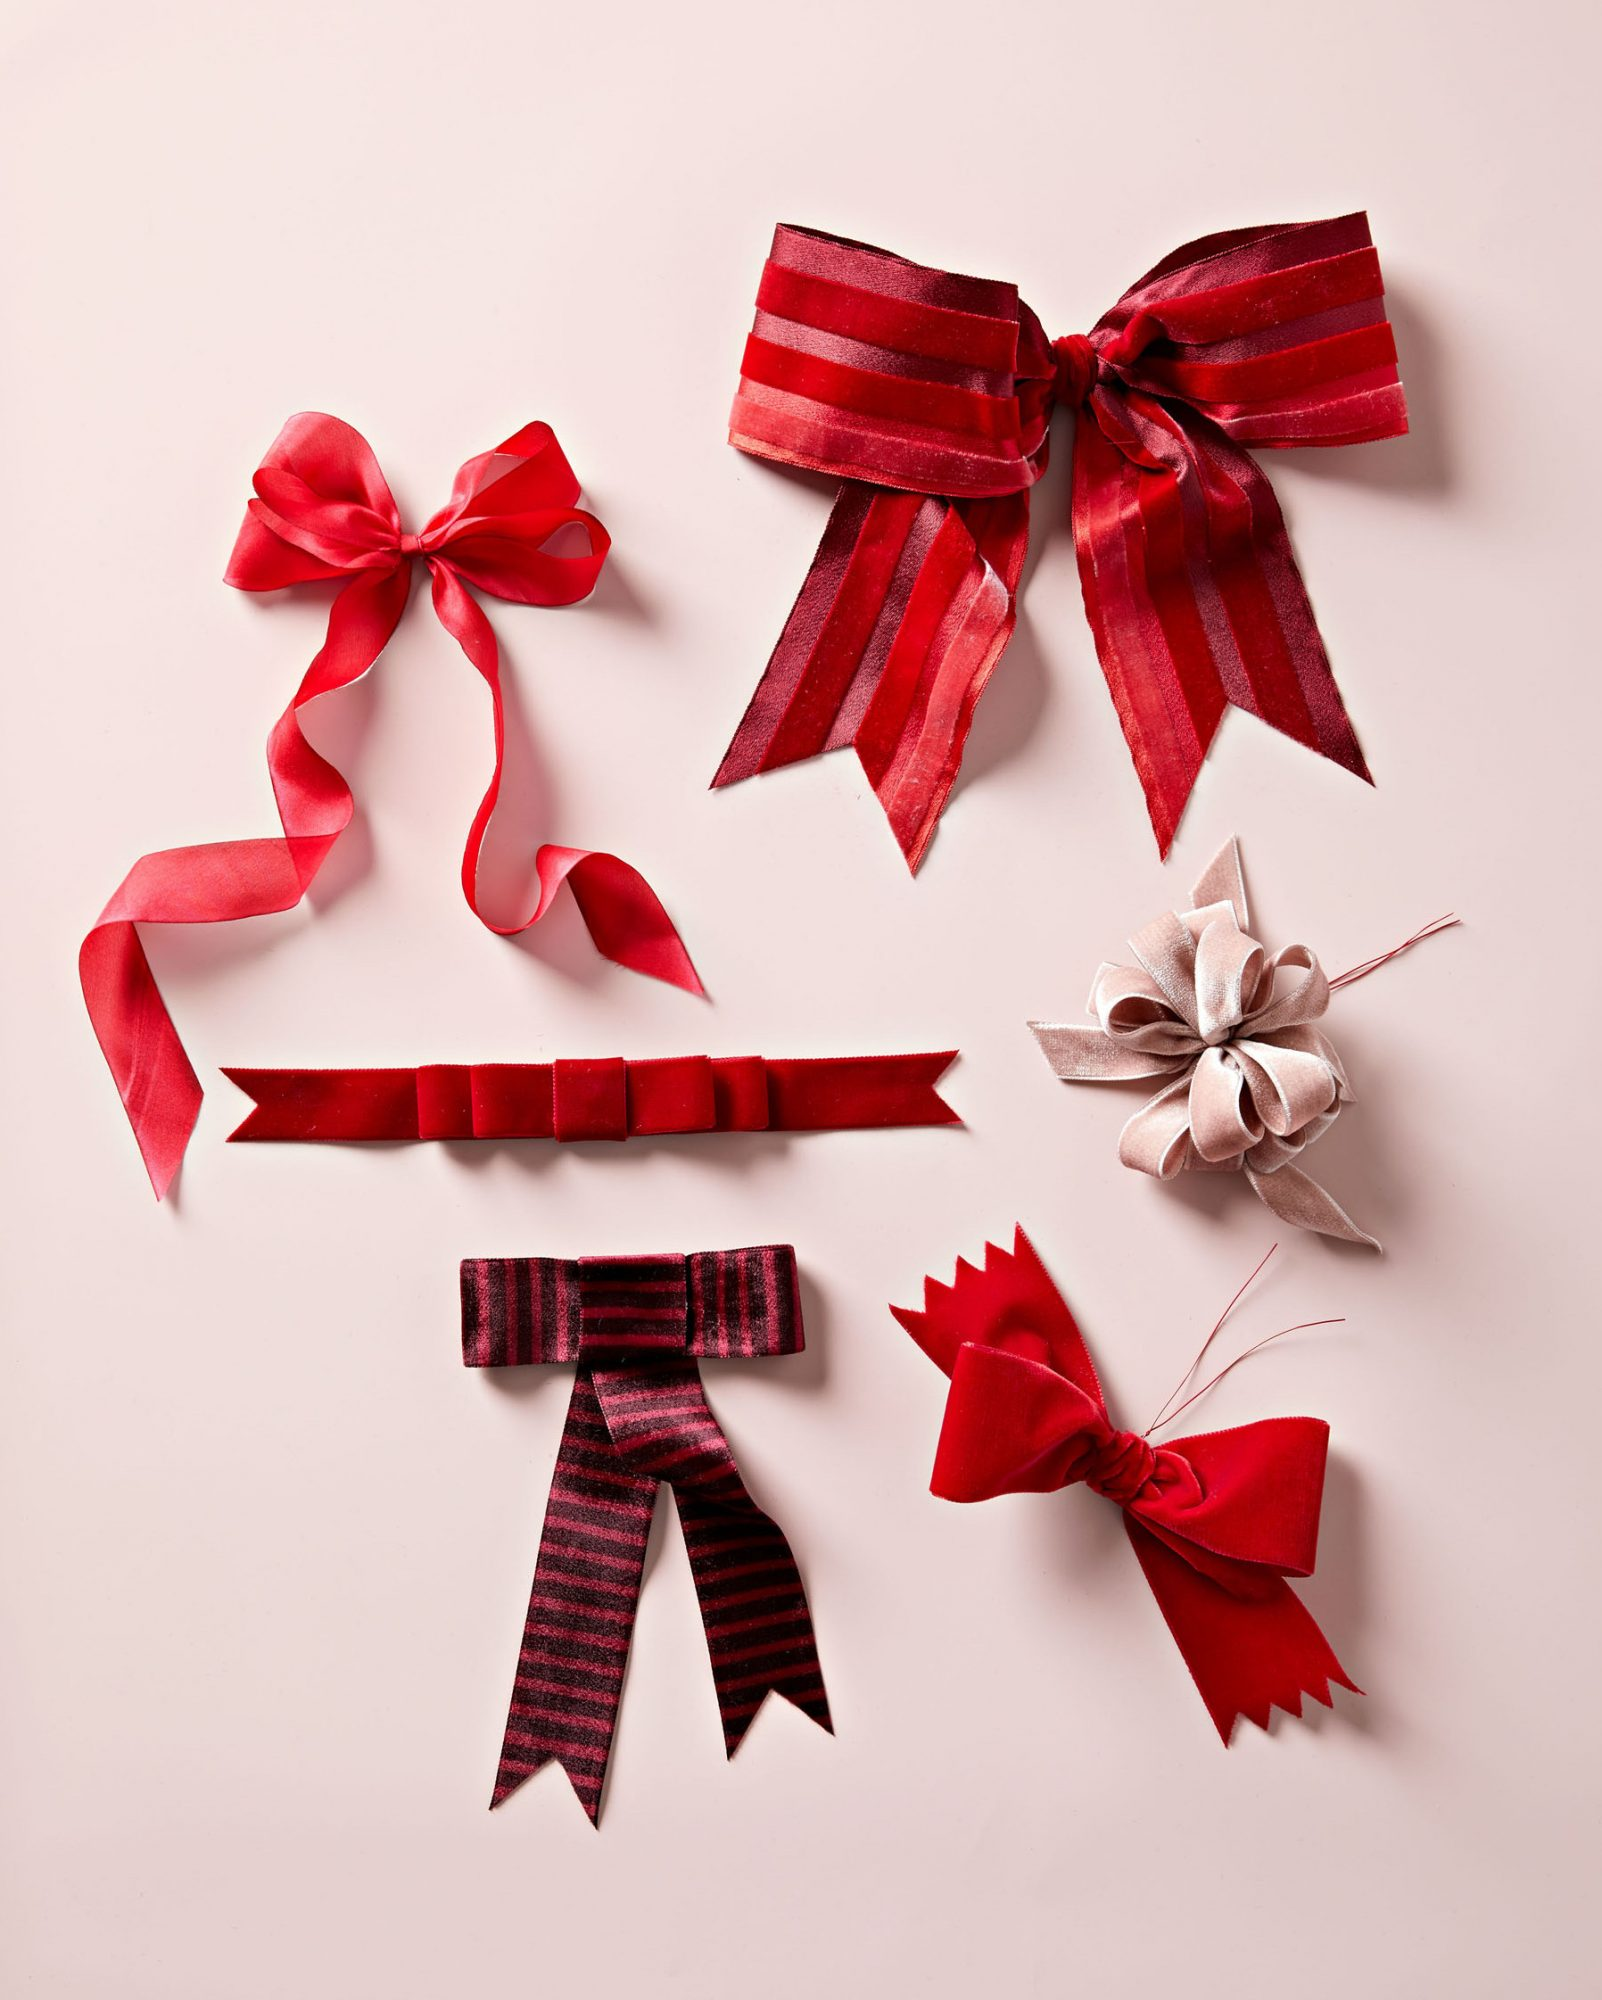 ribbons tied up in bows